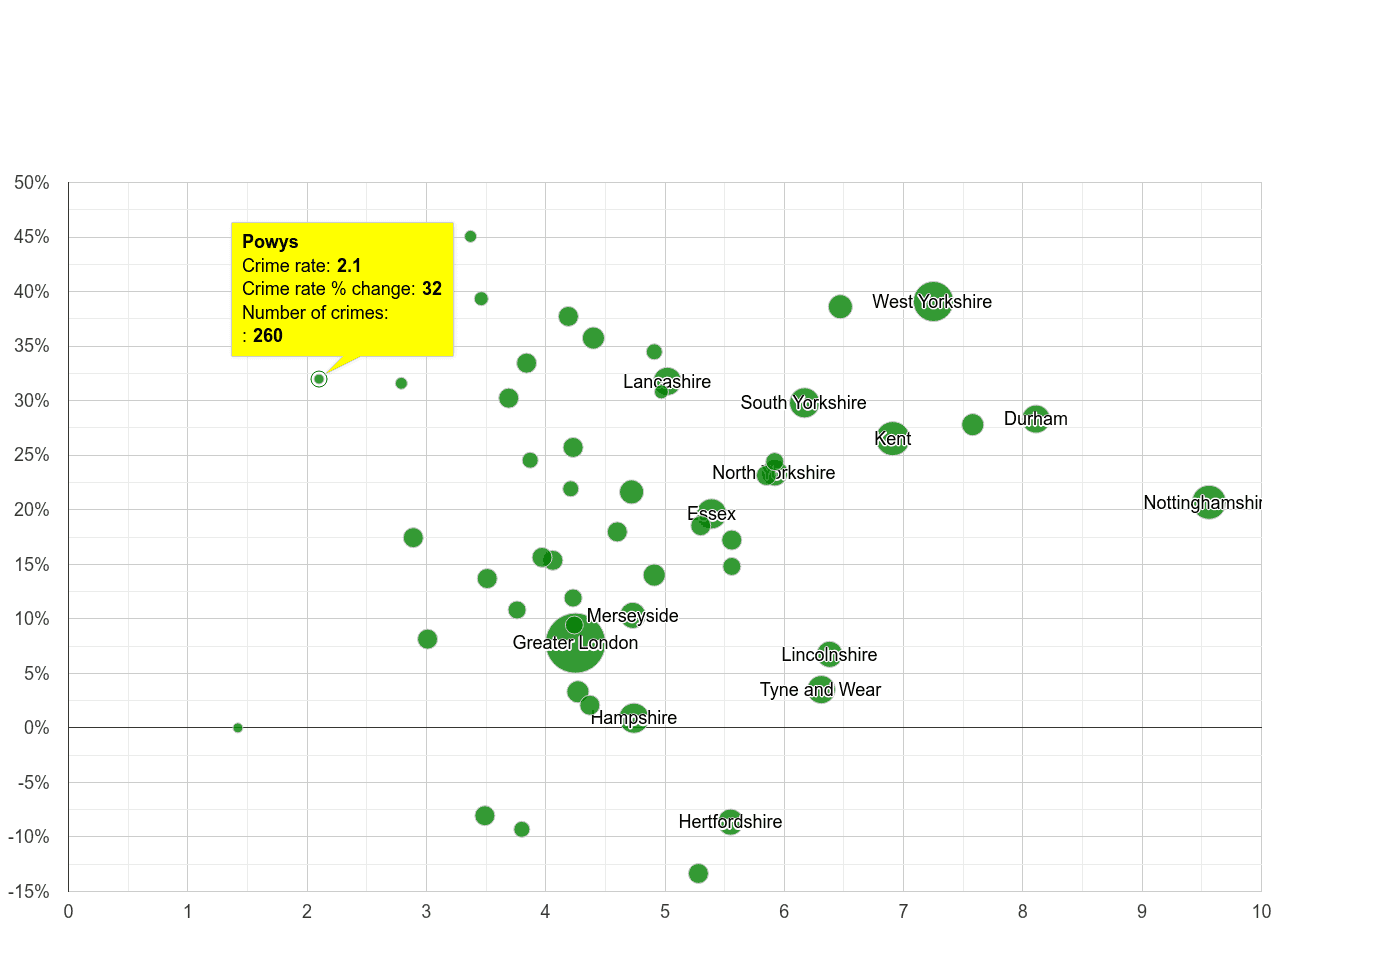 Powys shoplifting crime rate compared to other counties